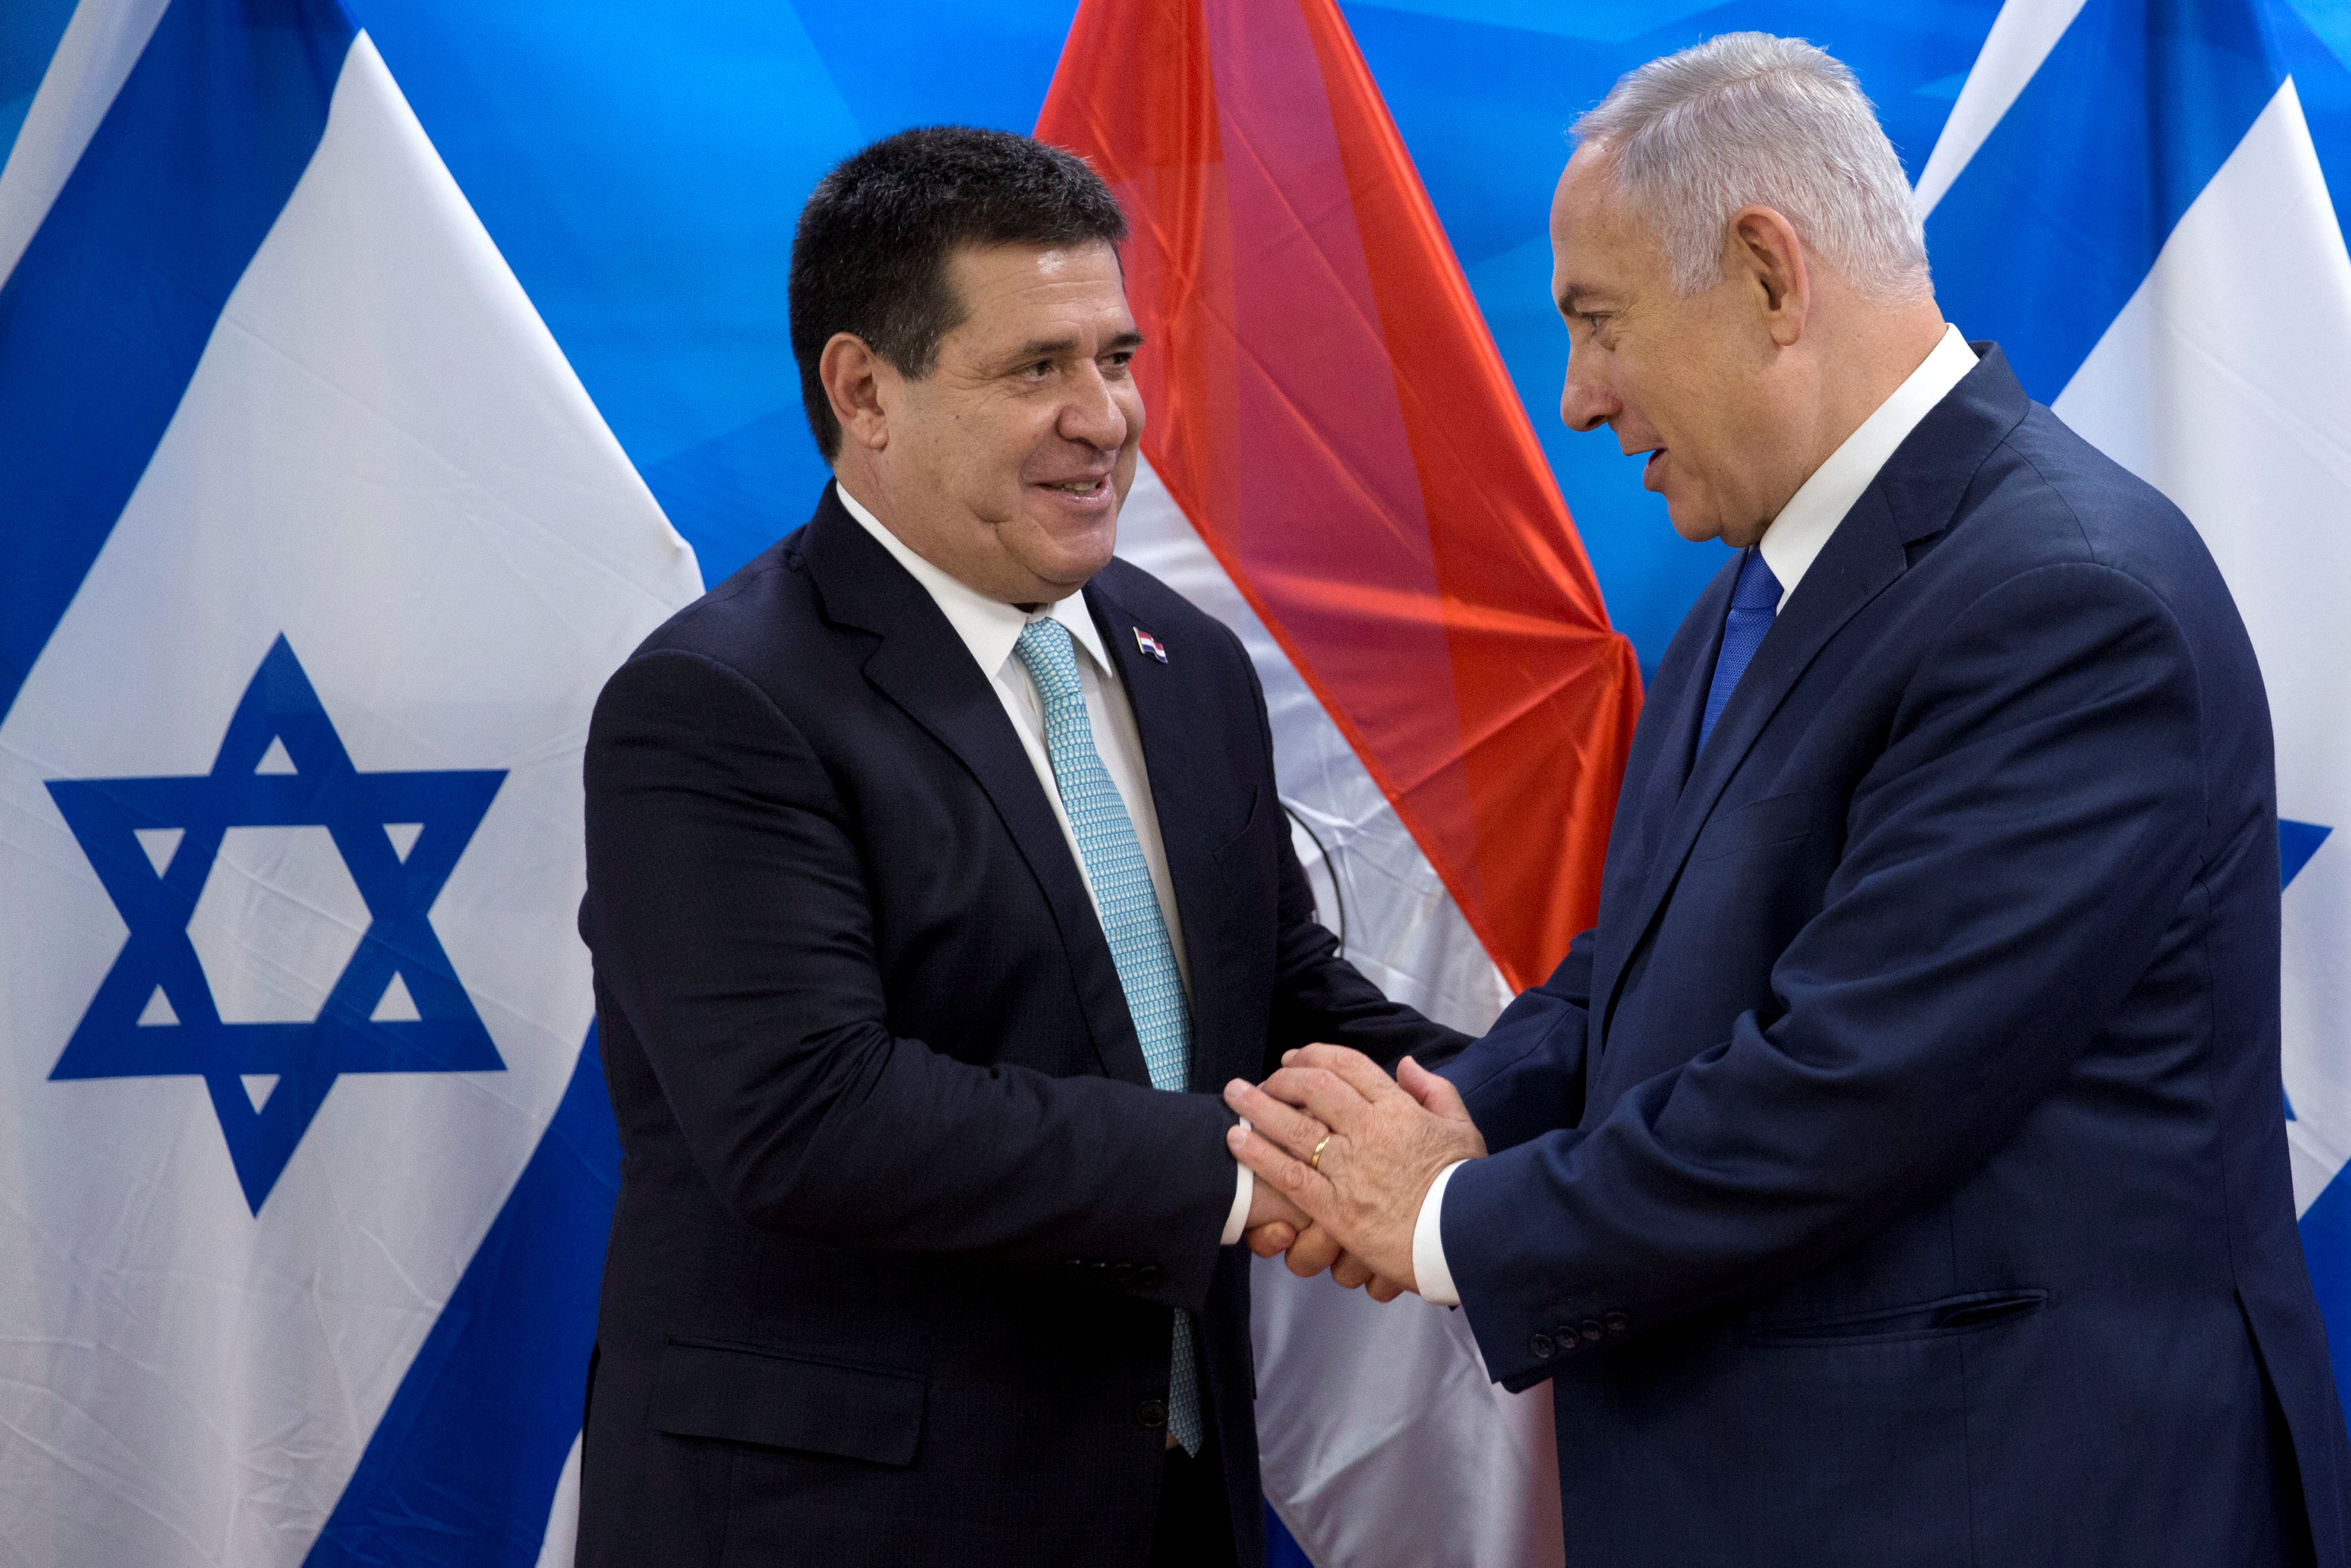 Paraguayan President Horacio Cartes shakes hands with Israeli Prime Minister Benjamin Netanyahu during a meeting at the Prime Minister's office in Jerusalem, following the dedication ceremony of the embassy of Paraguay in Jerusalem, May 21, 2018. Sebastian Scheiner/Pool via Reuters